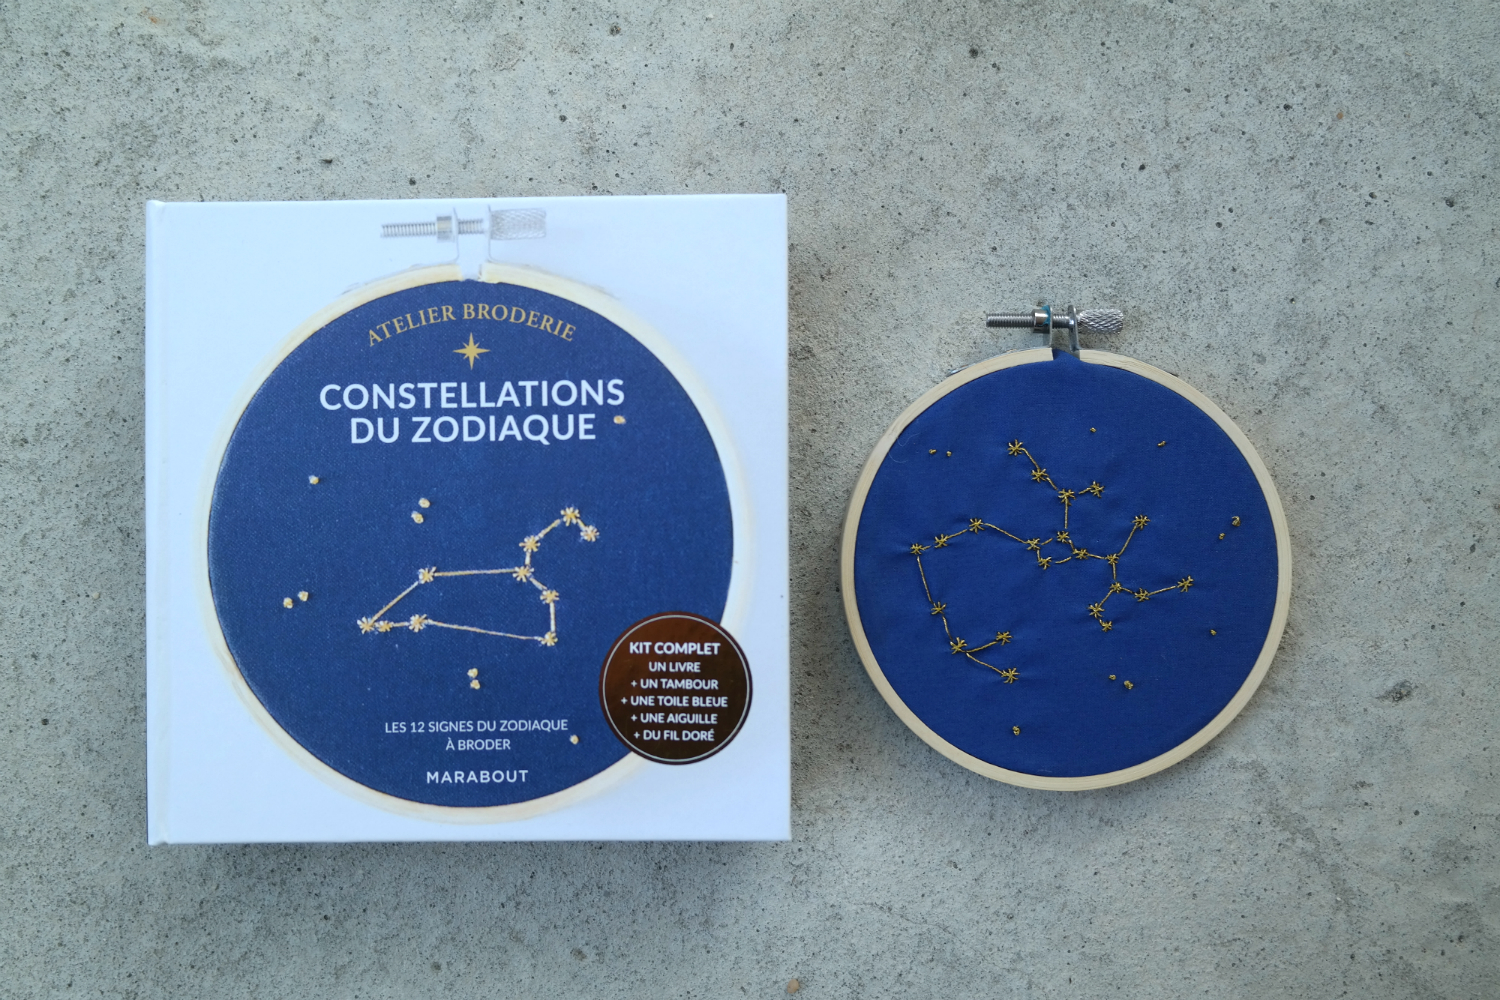 broderie_constellation